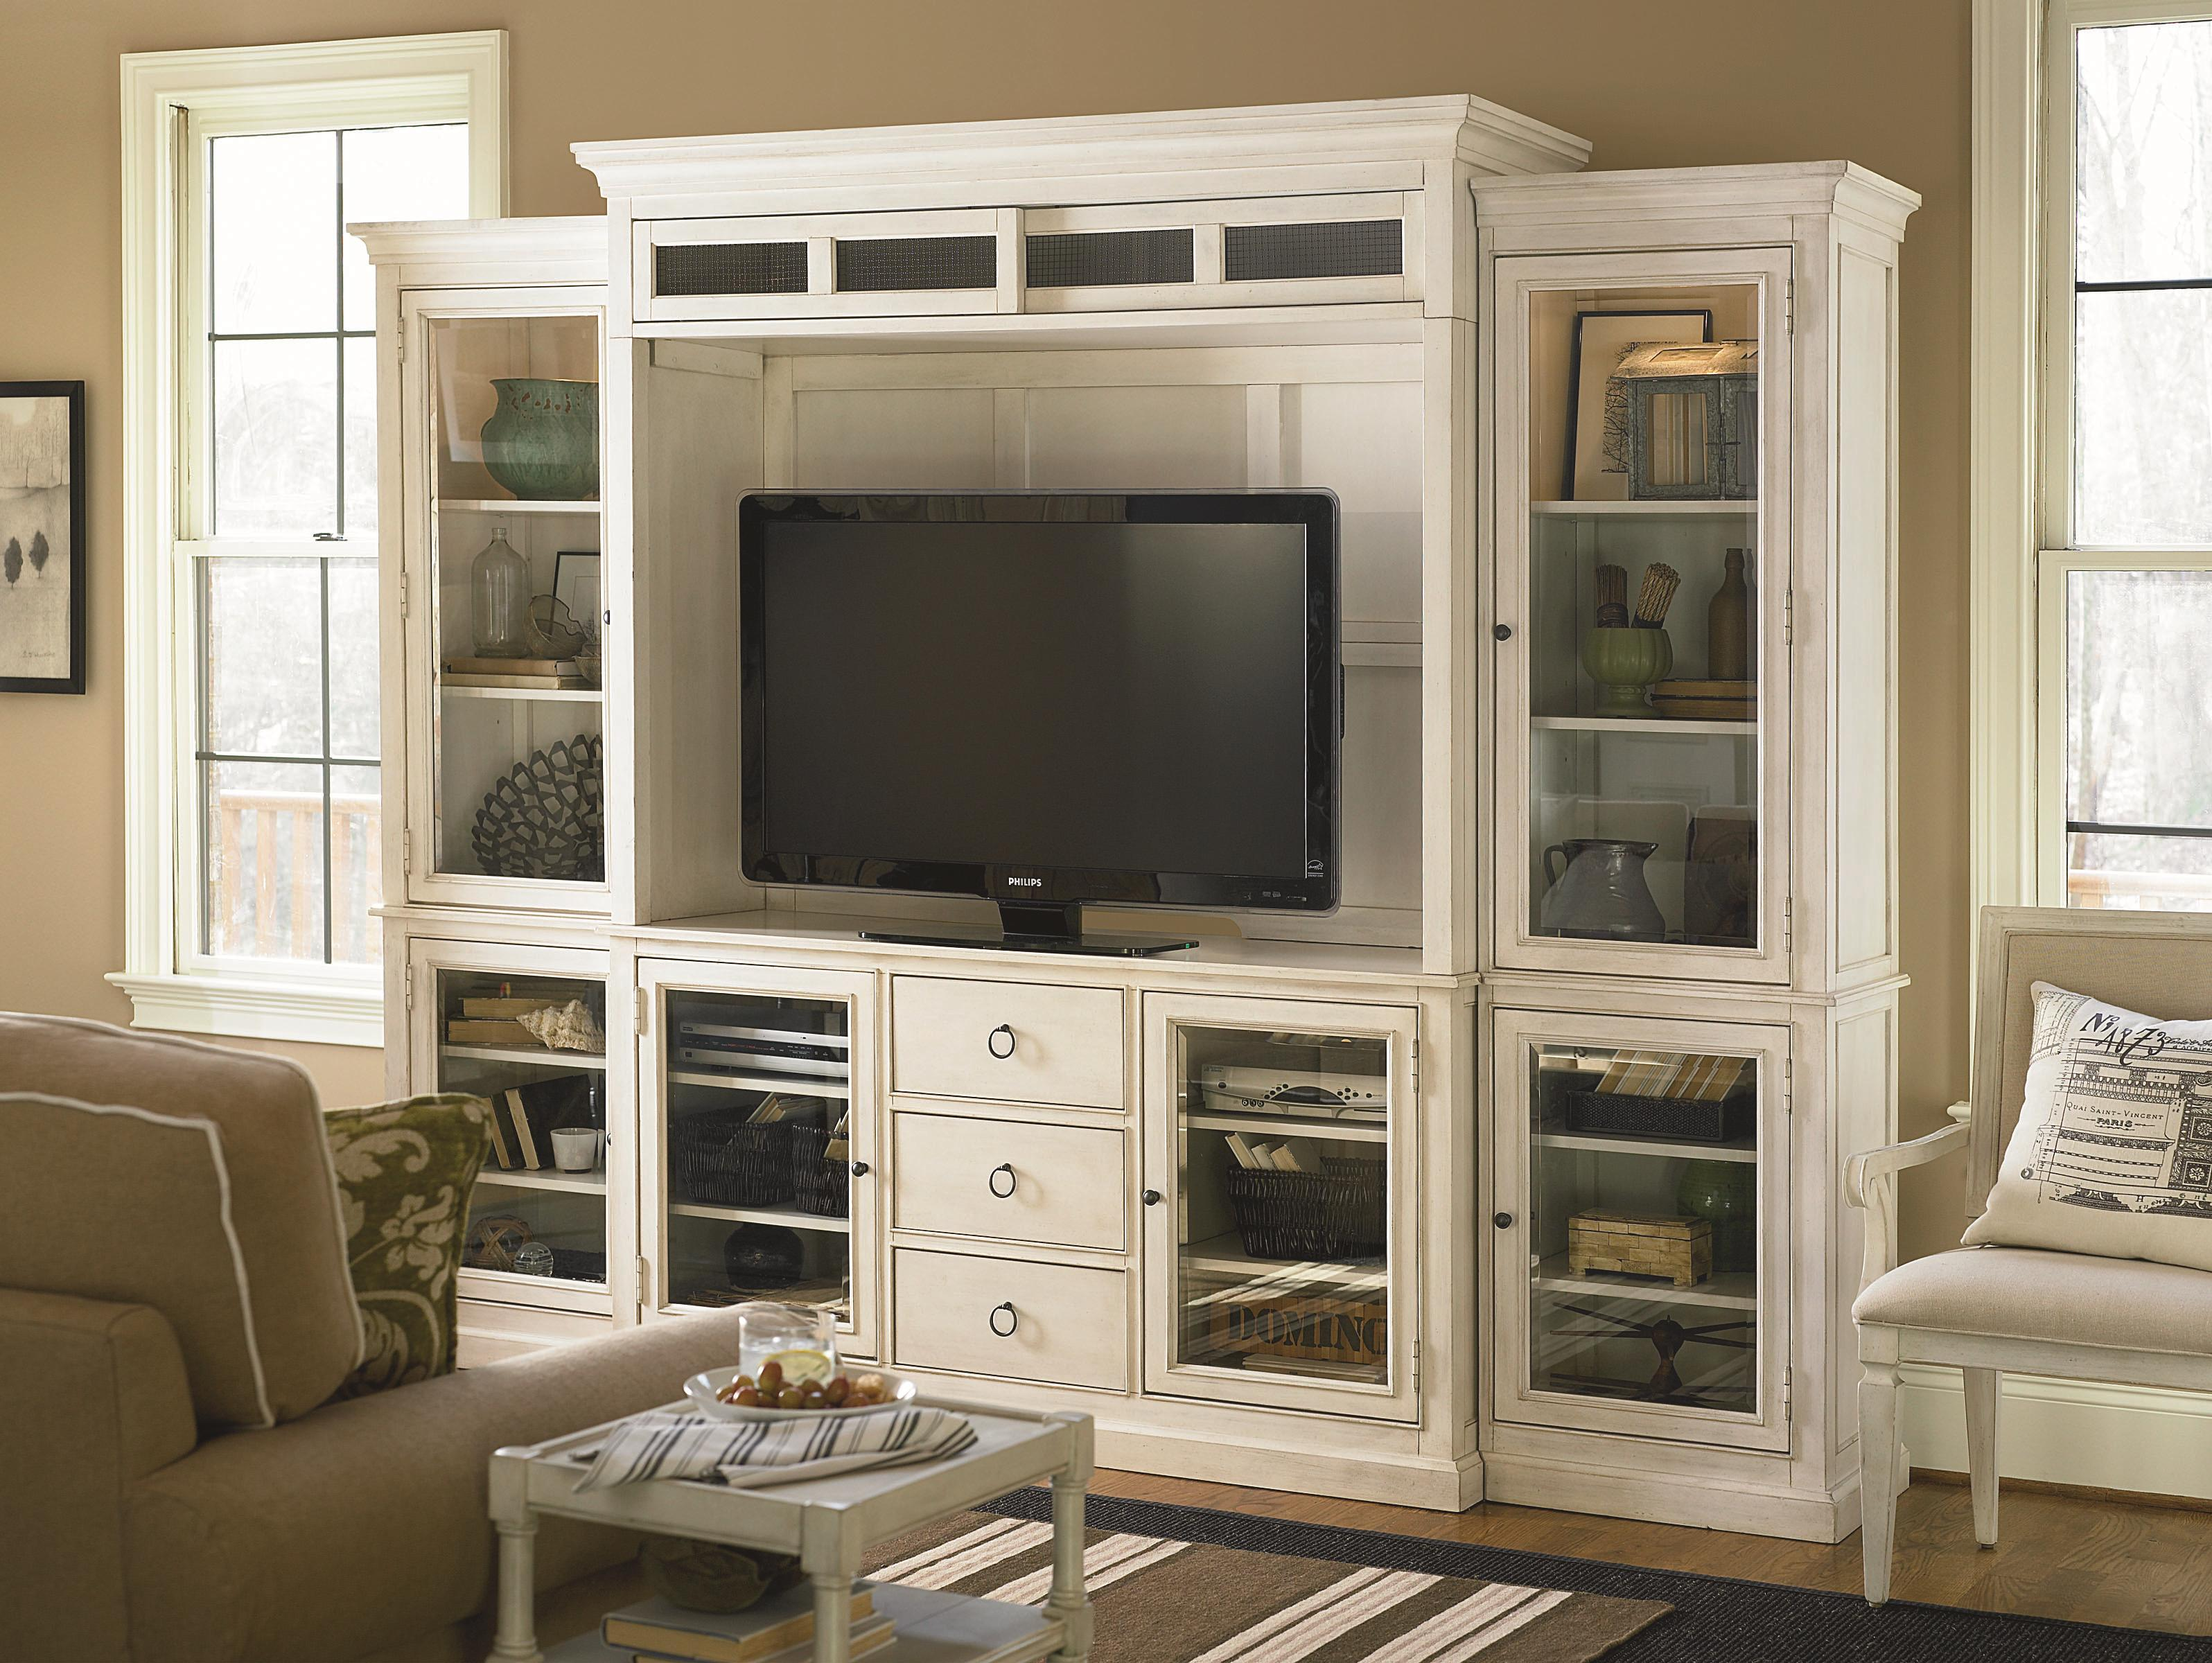 Summer Hill 987 By Universal Baer S Furniture